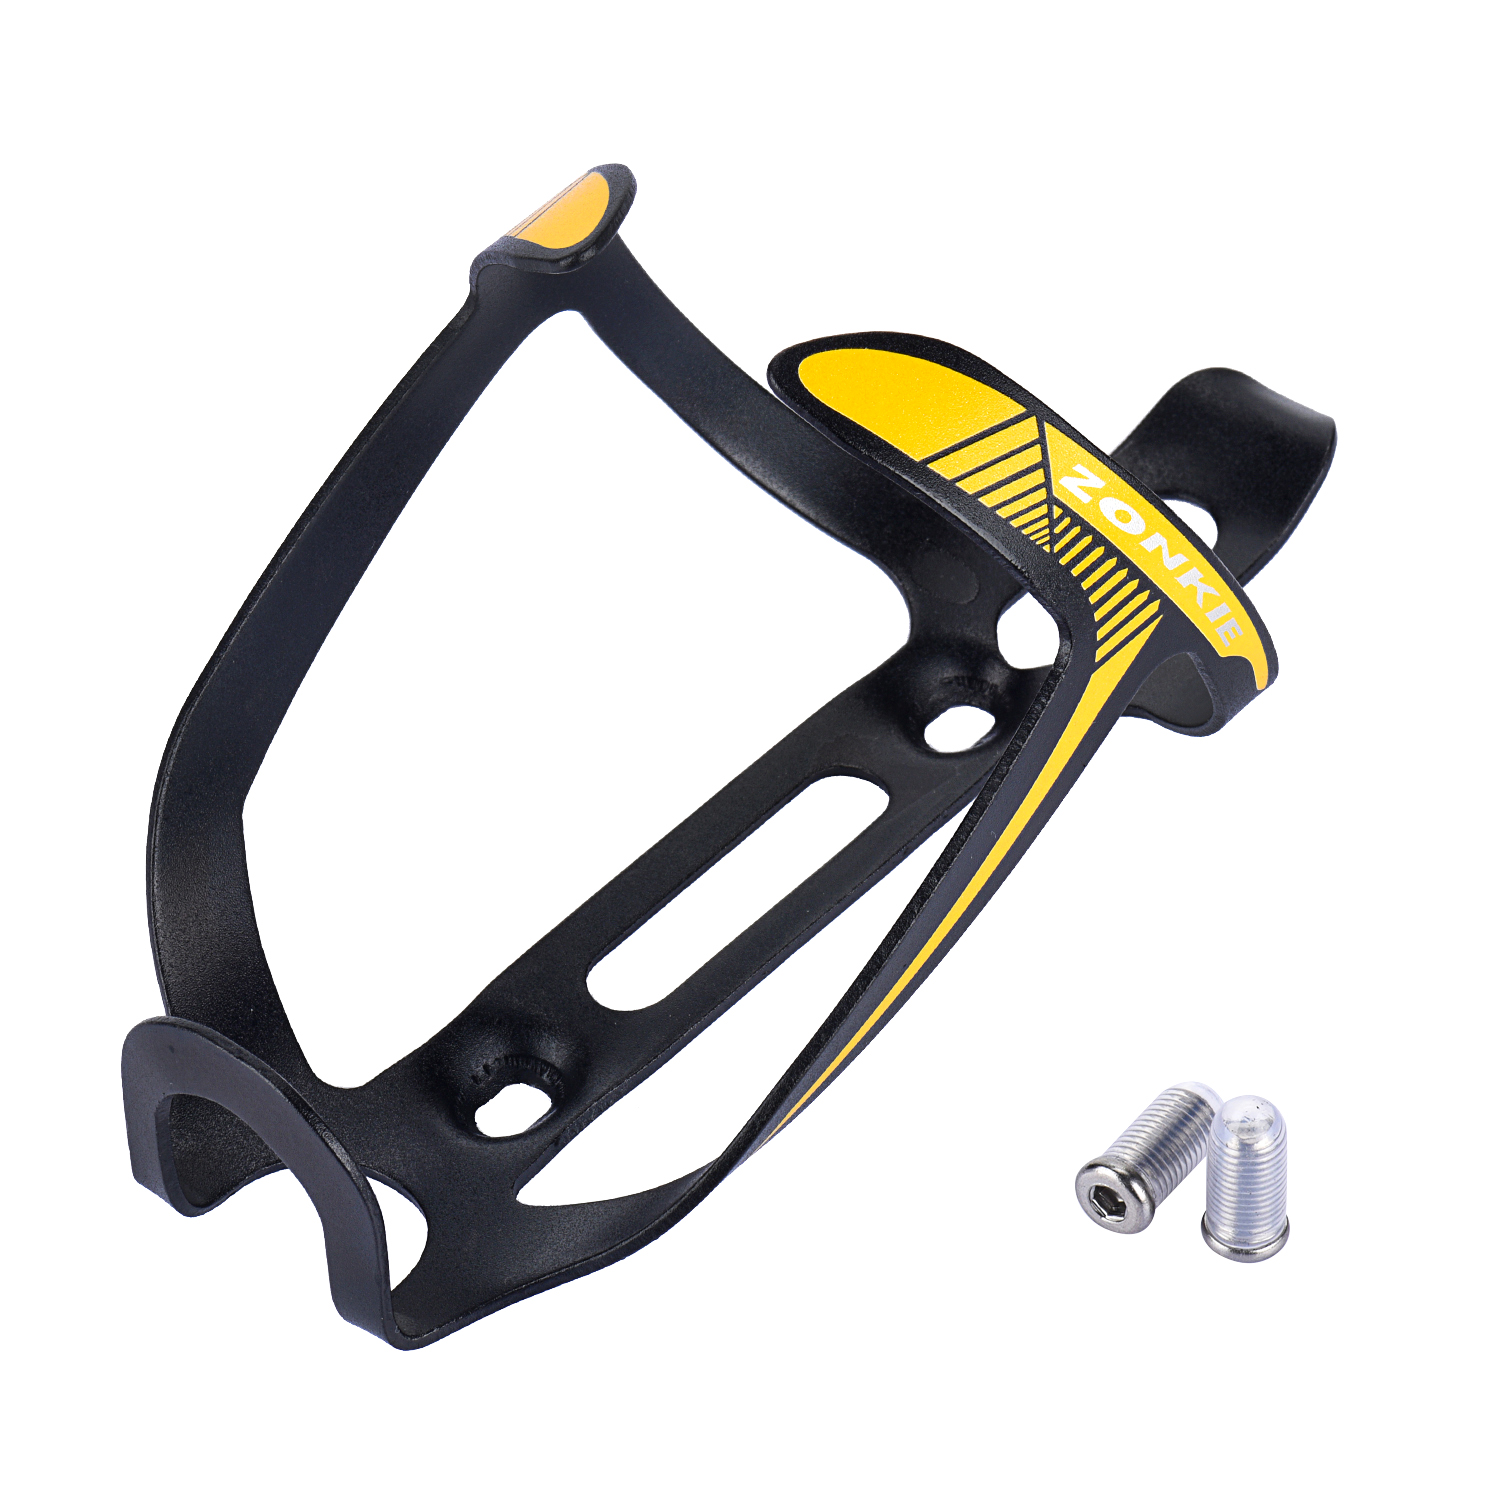 ZK-016HU Bike Bottle Cages Aluminum Alloy